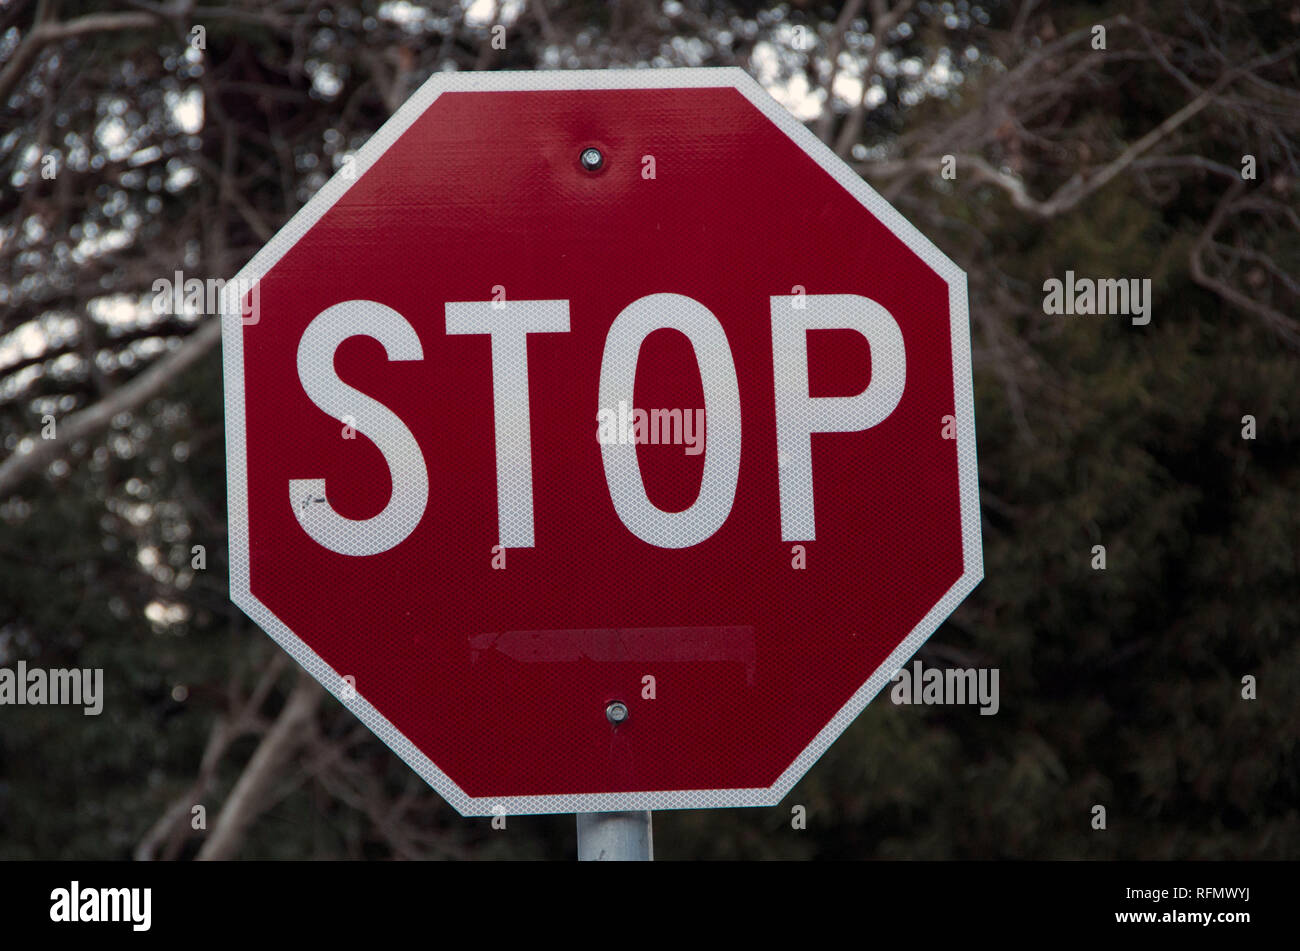 A stop sign on the road clearly indicates when a driver must stop their vehicle, usually at an intersection. - Stock Image